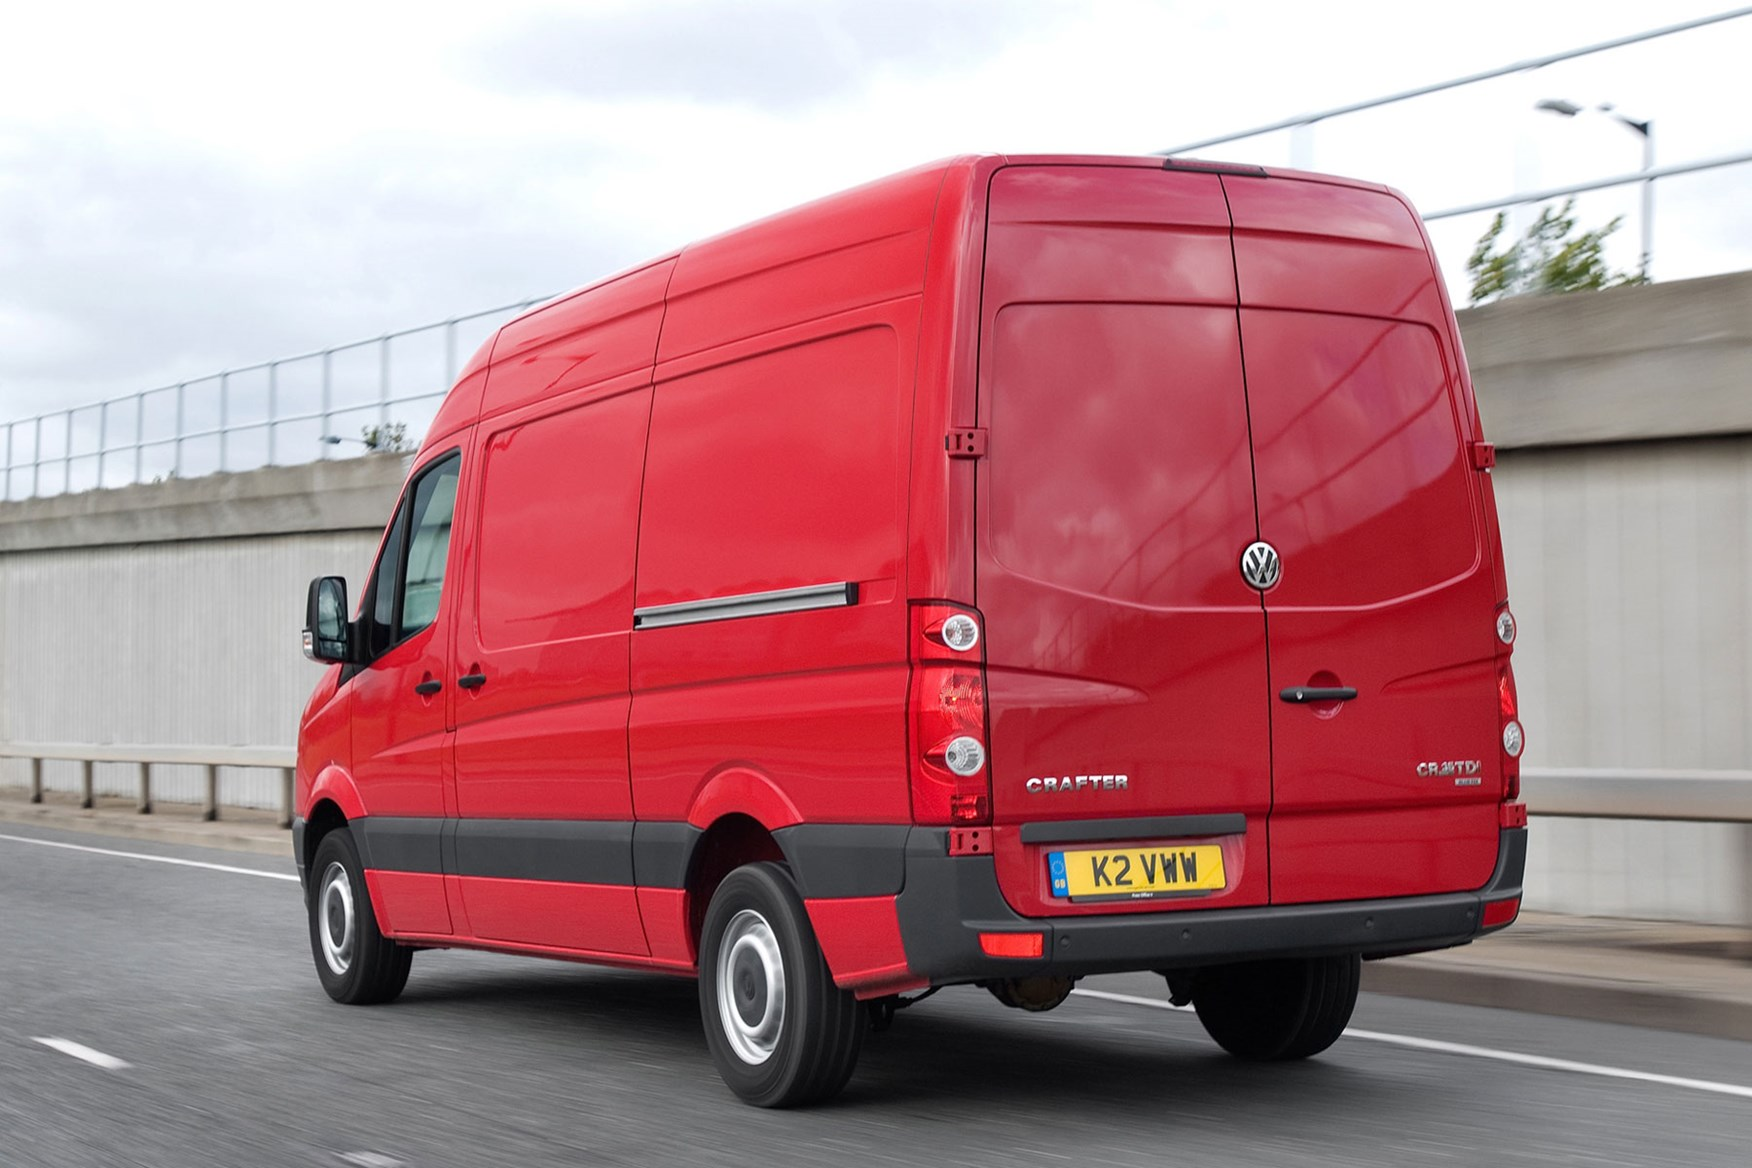 VW Crafter (1996-2003) rear view driving